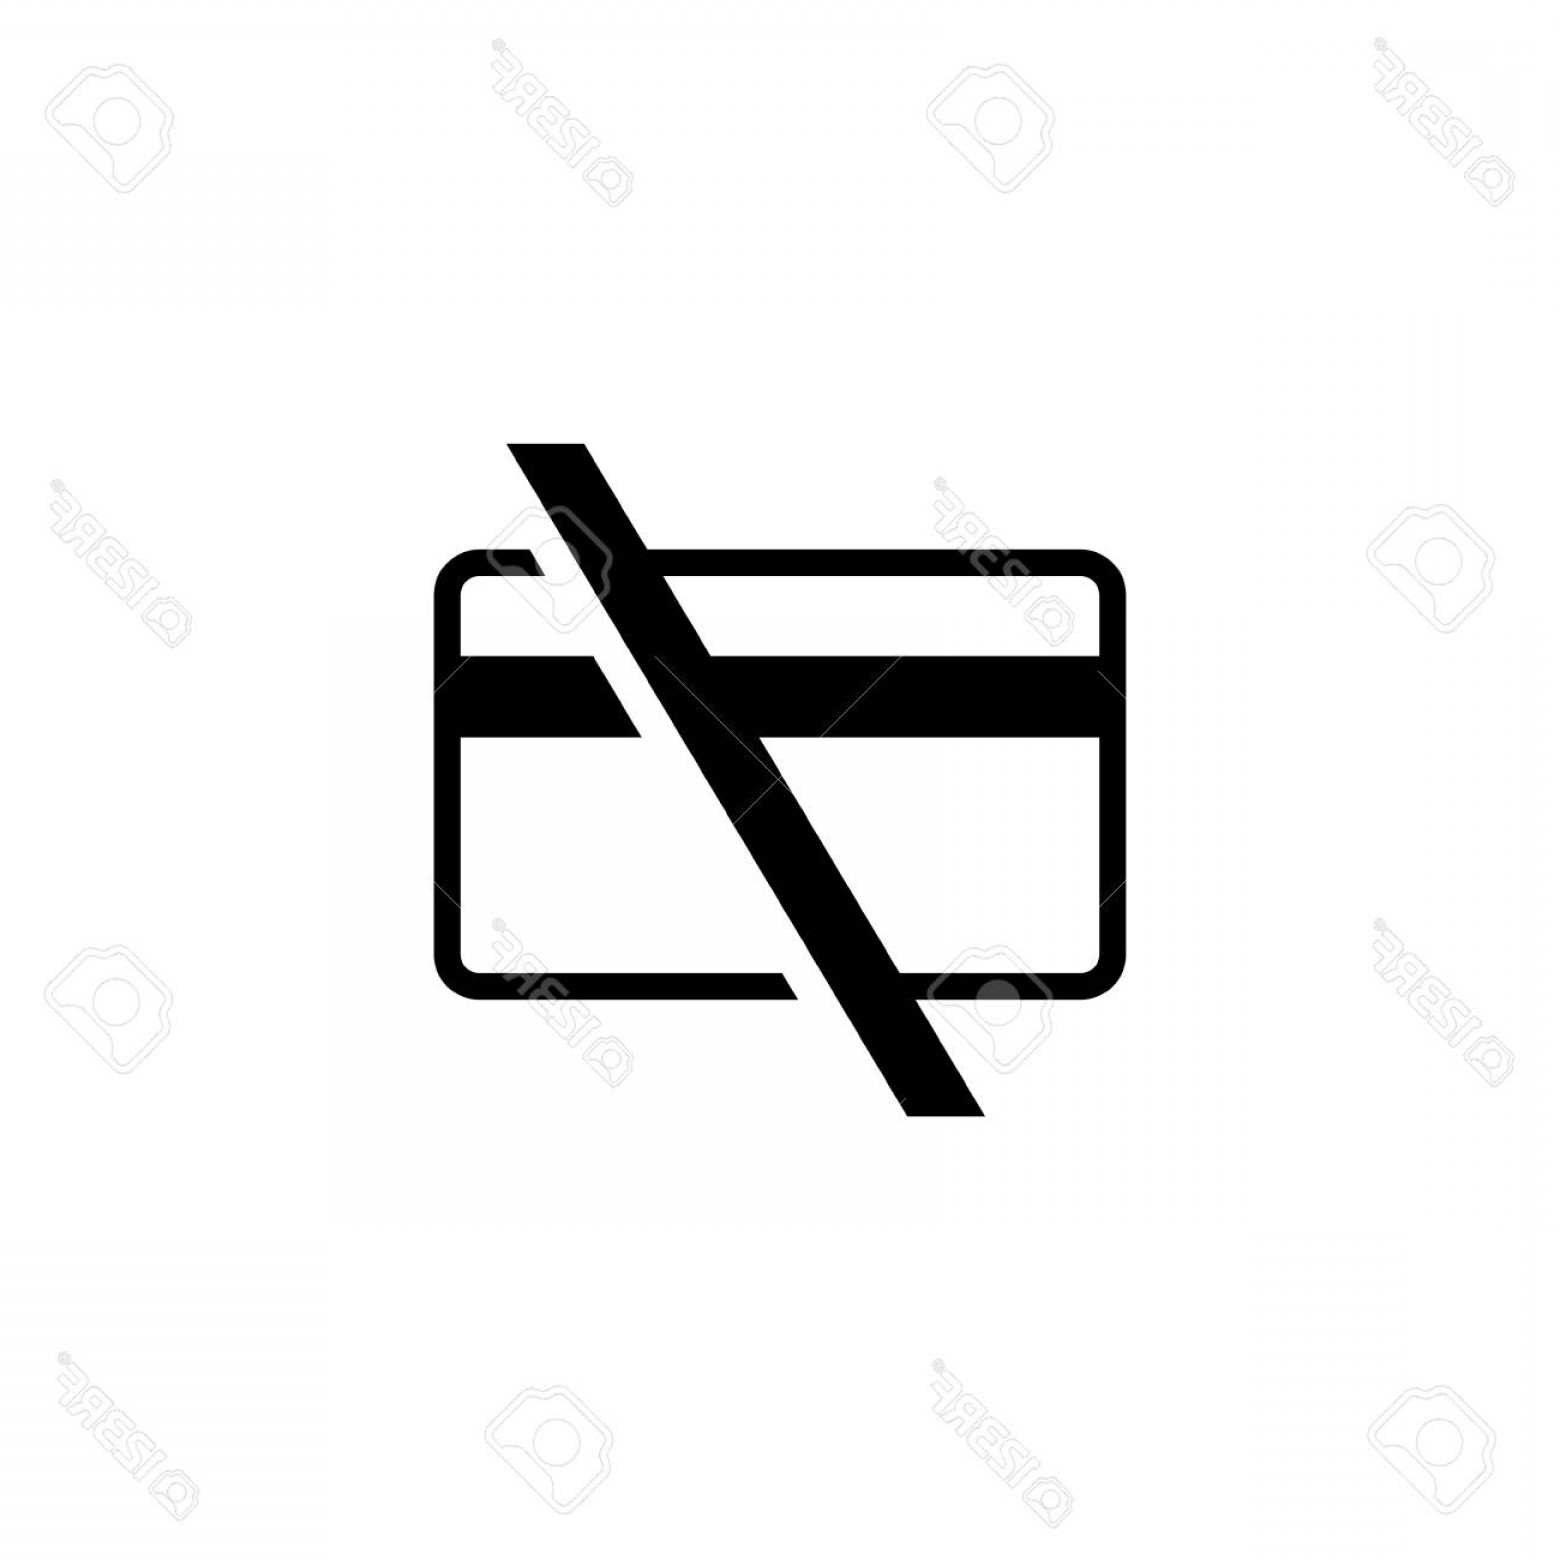 Vector Cards Accepted: Photocash Only No Credit Cards Accepted Flat Vector Icon Illustration Simple Black Symbol On White Backgr